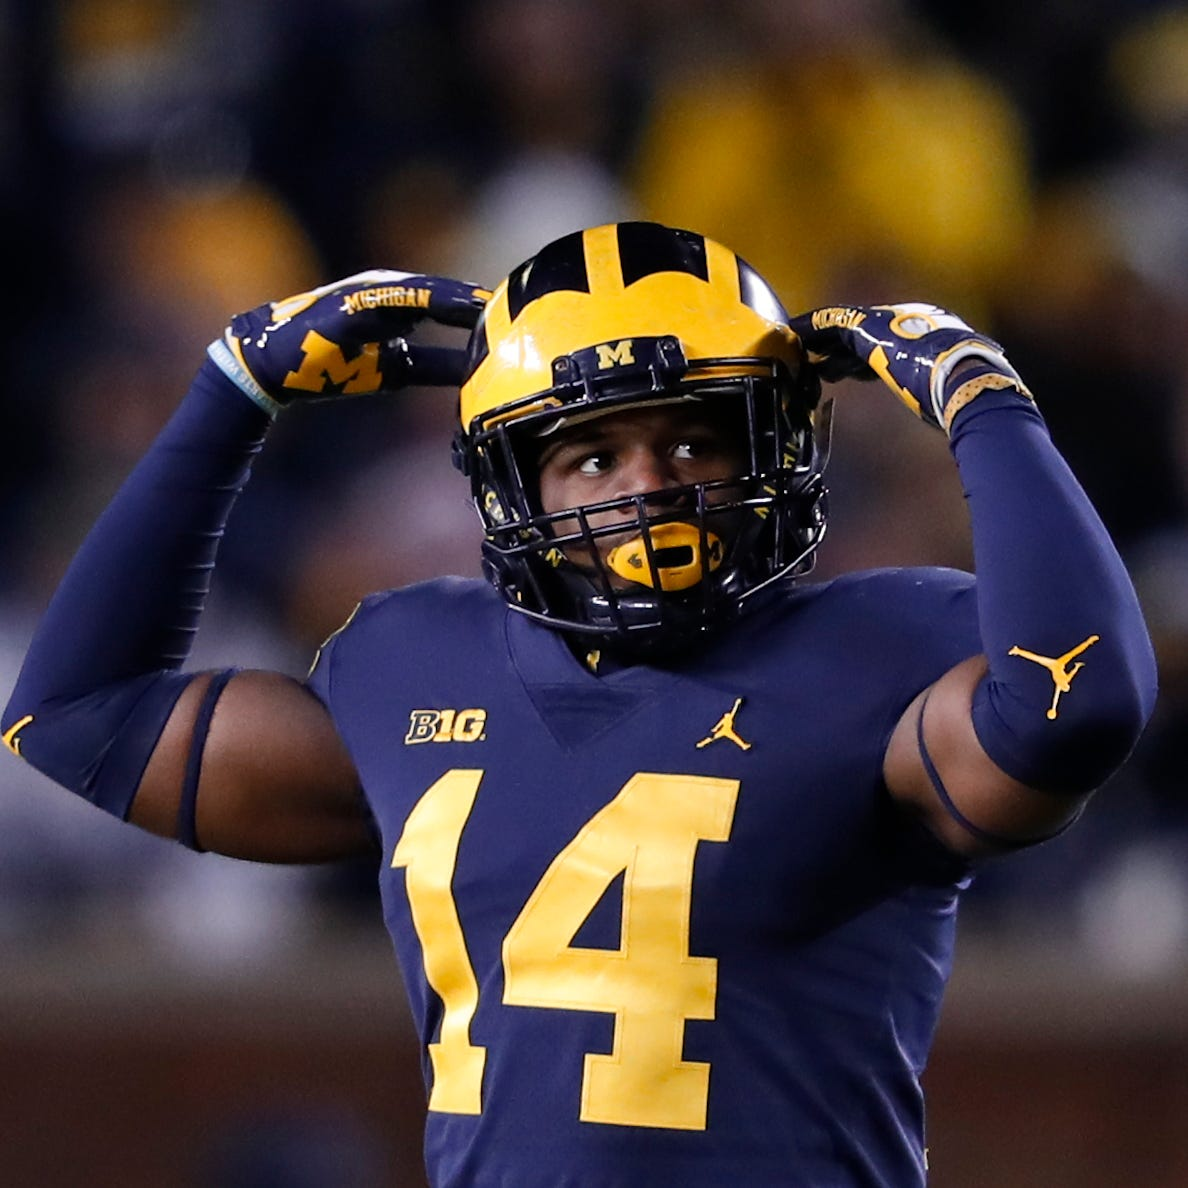 Michigan football vs. Ohio State: Who has the edge?